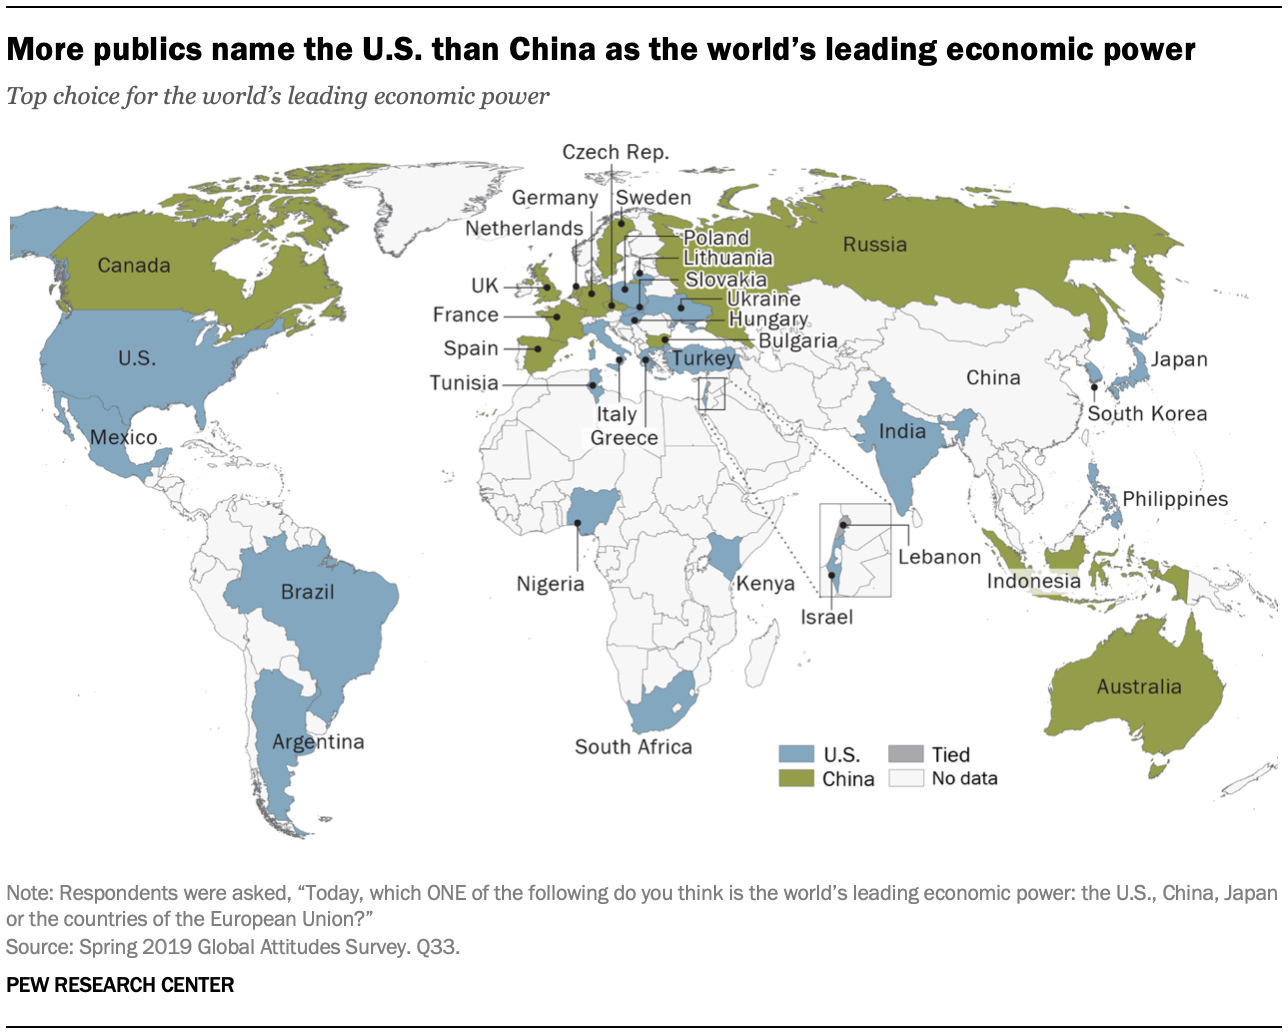 A map showing more publics name the U.S. than China as the world's leading economic power